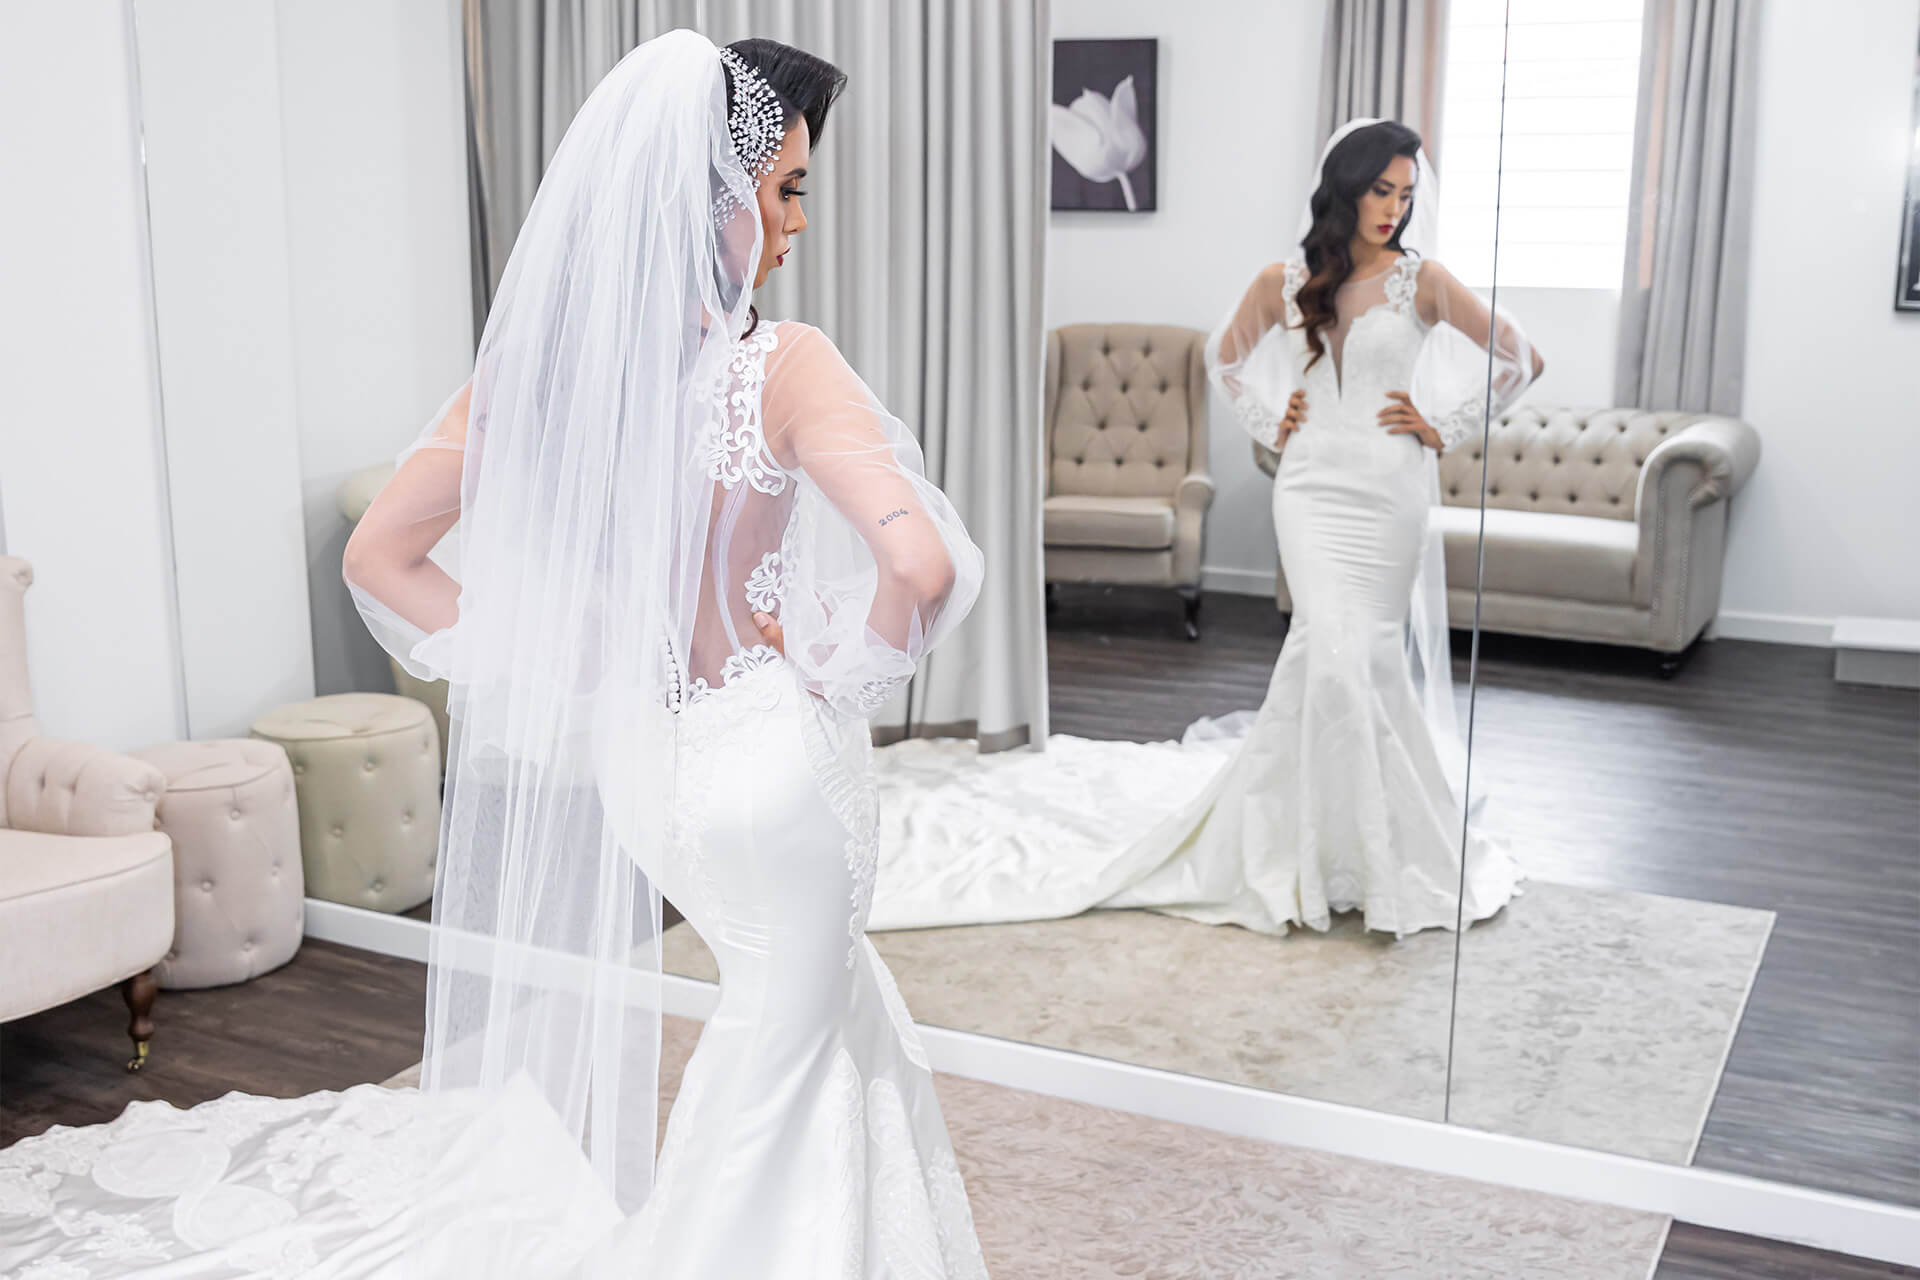 Model in a wedding dress looking at herself in the mirror